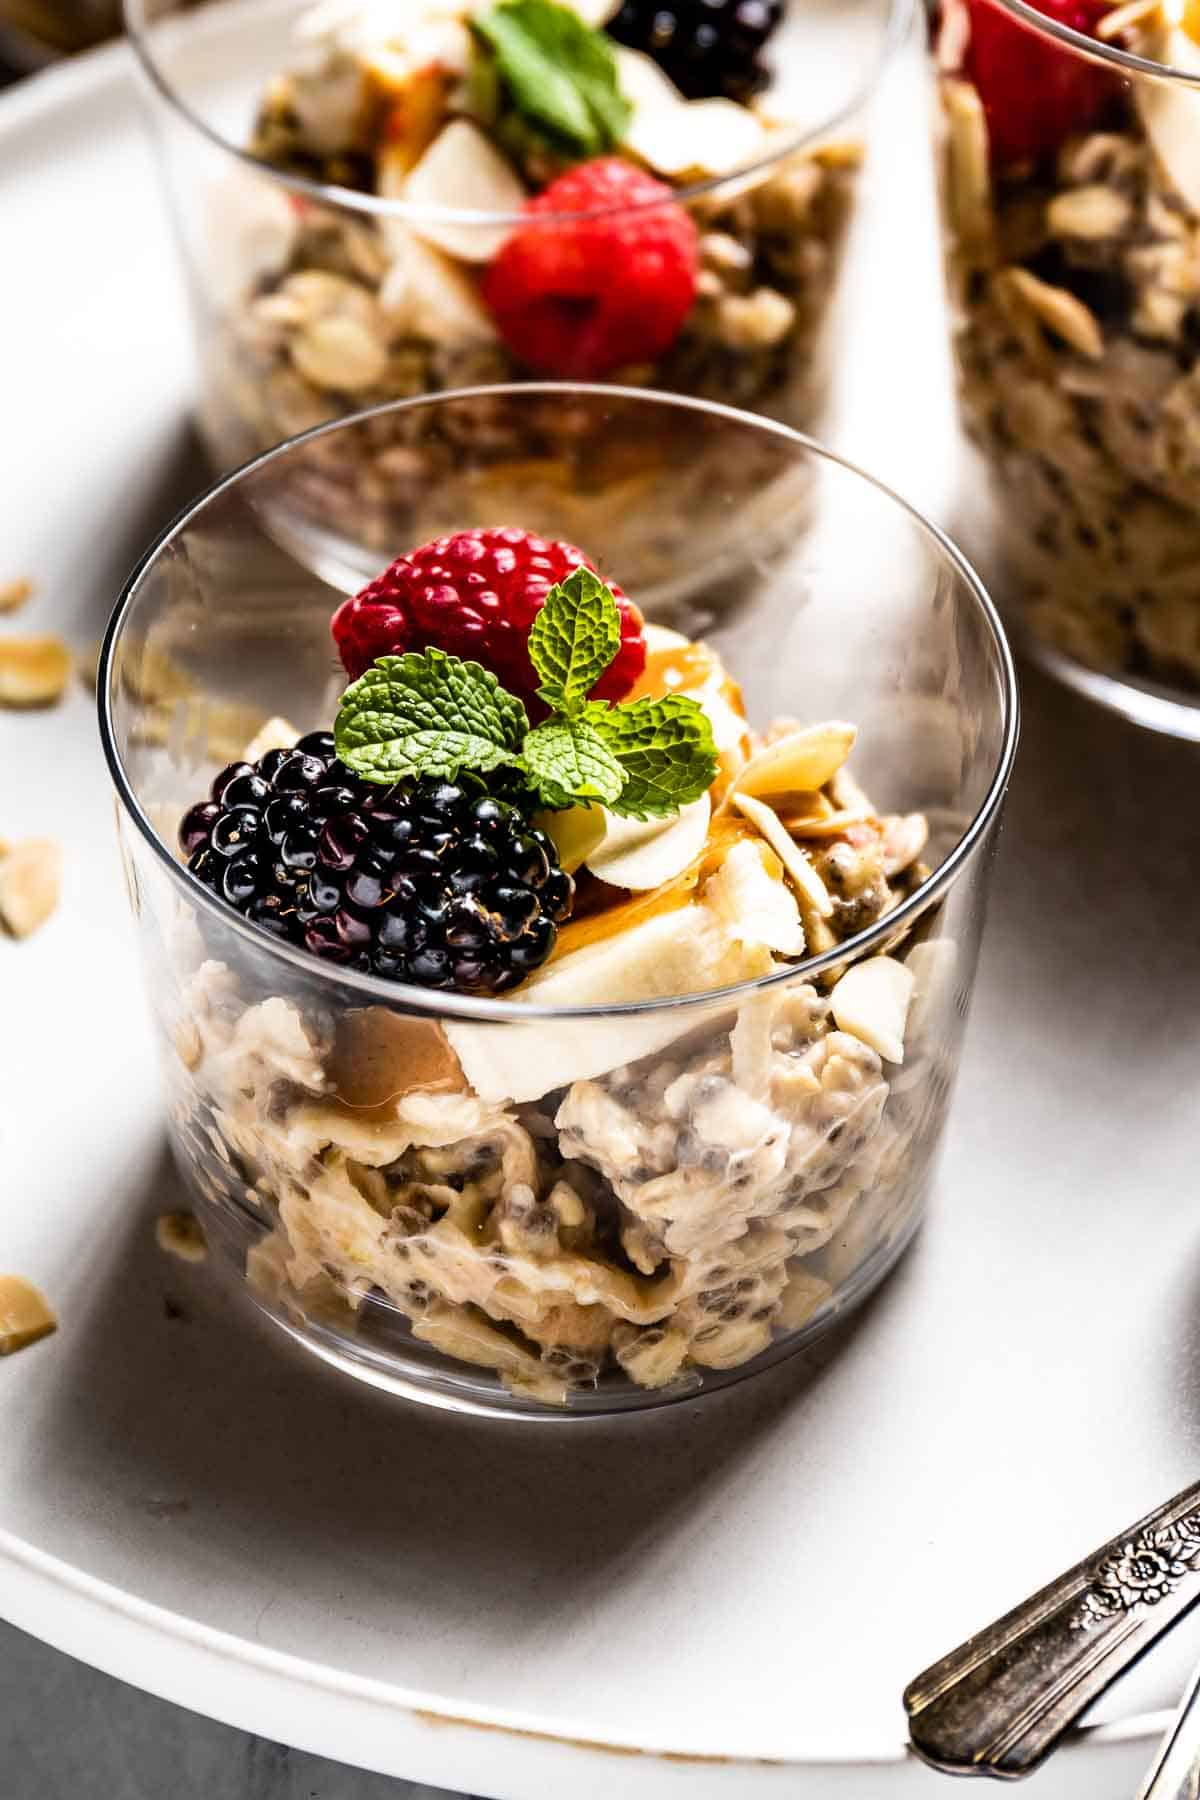 Overnight muesli in a glass garnished with fruit